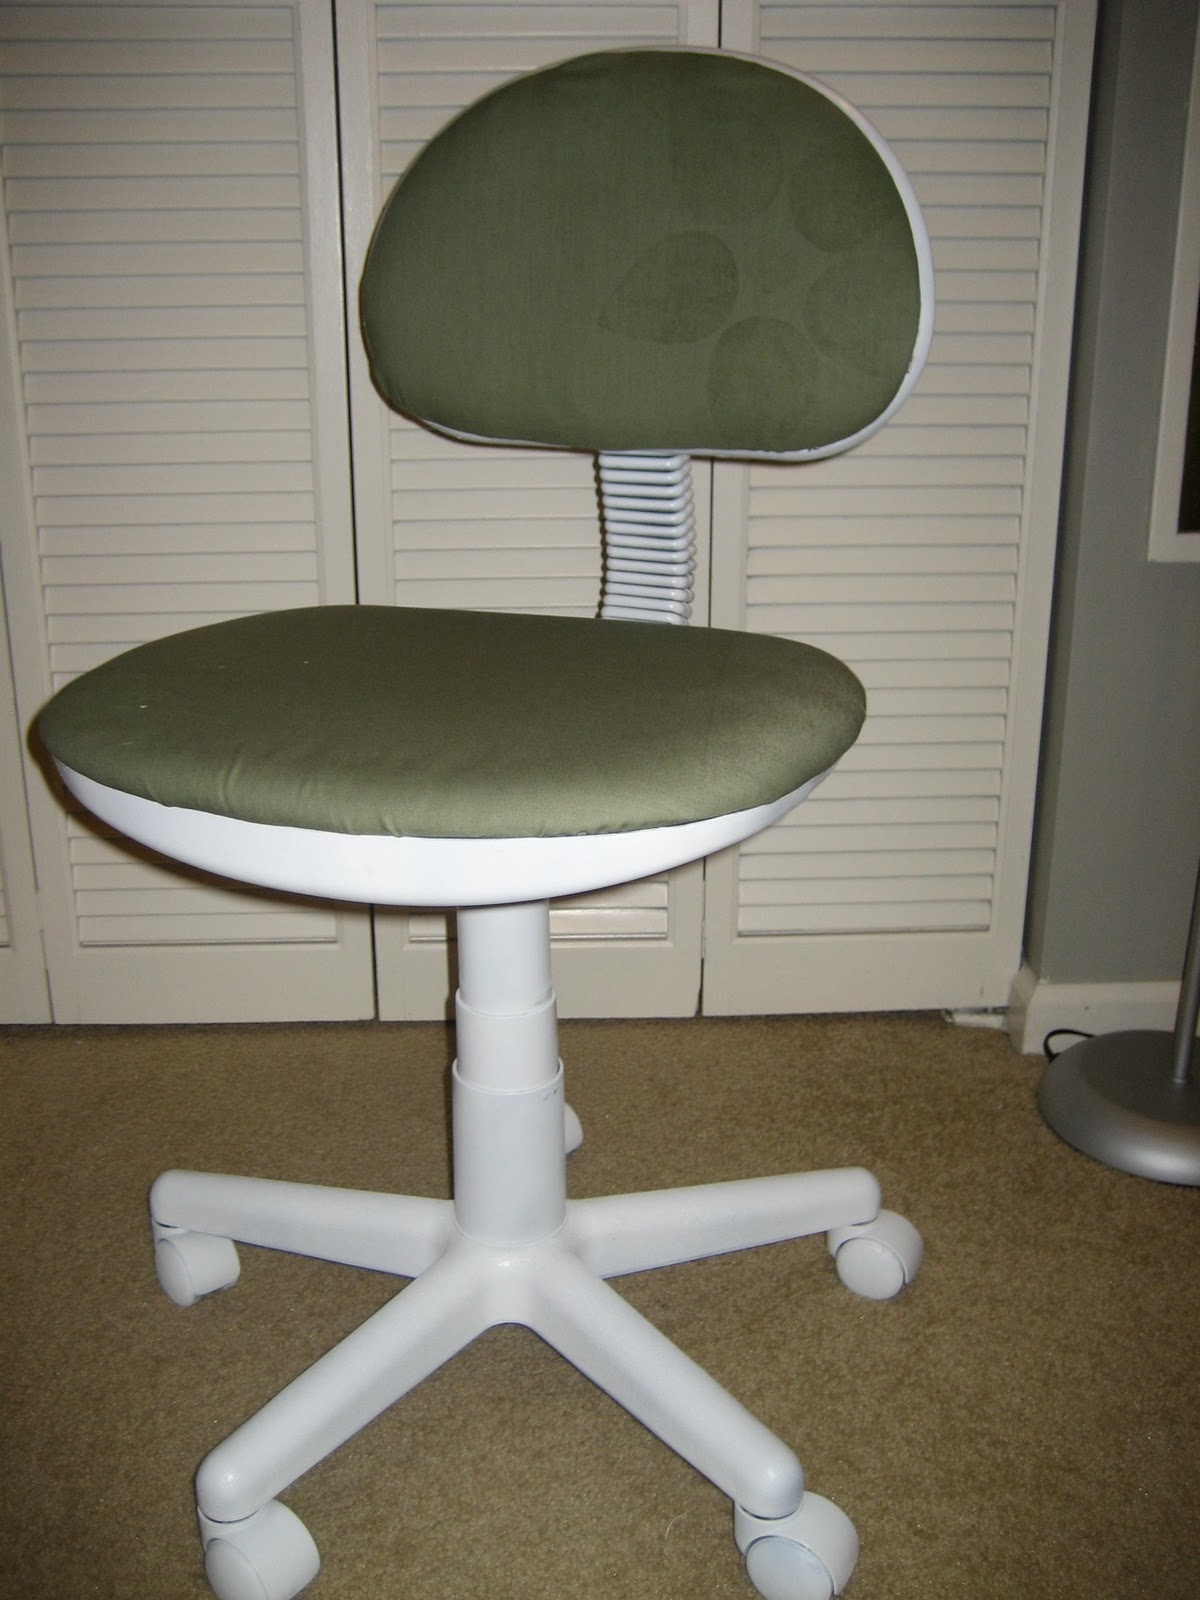 Reupholster Office Chair 31 Diy How To Reupholster A Desk Chair Tutorial